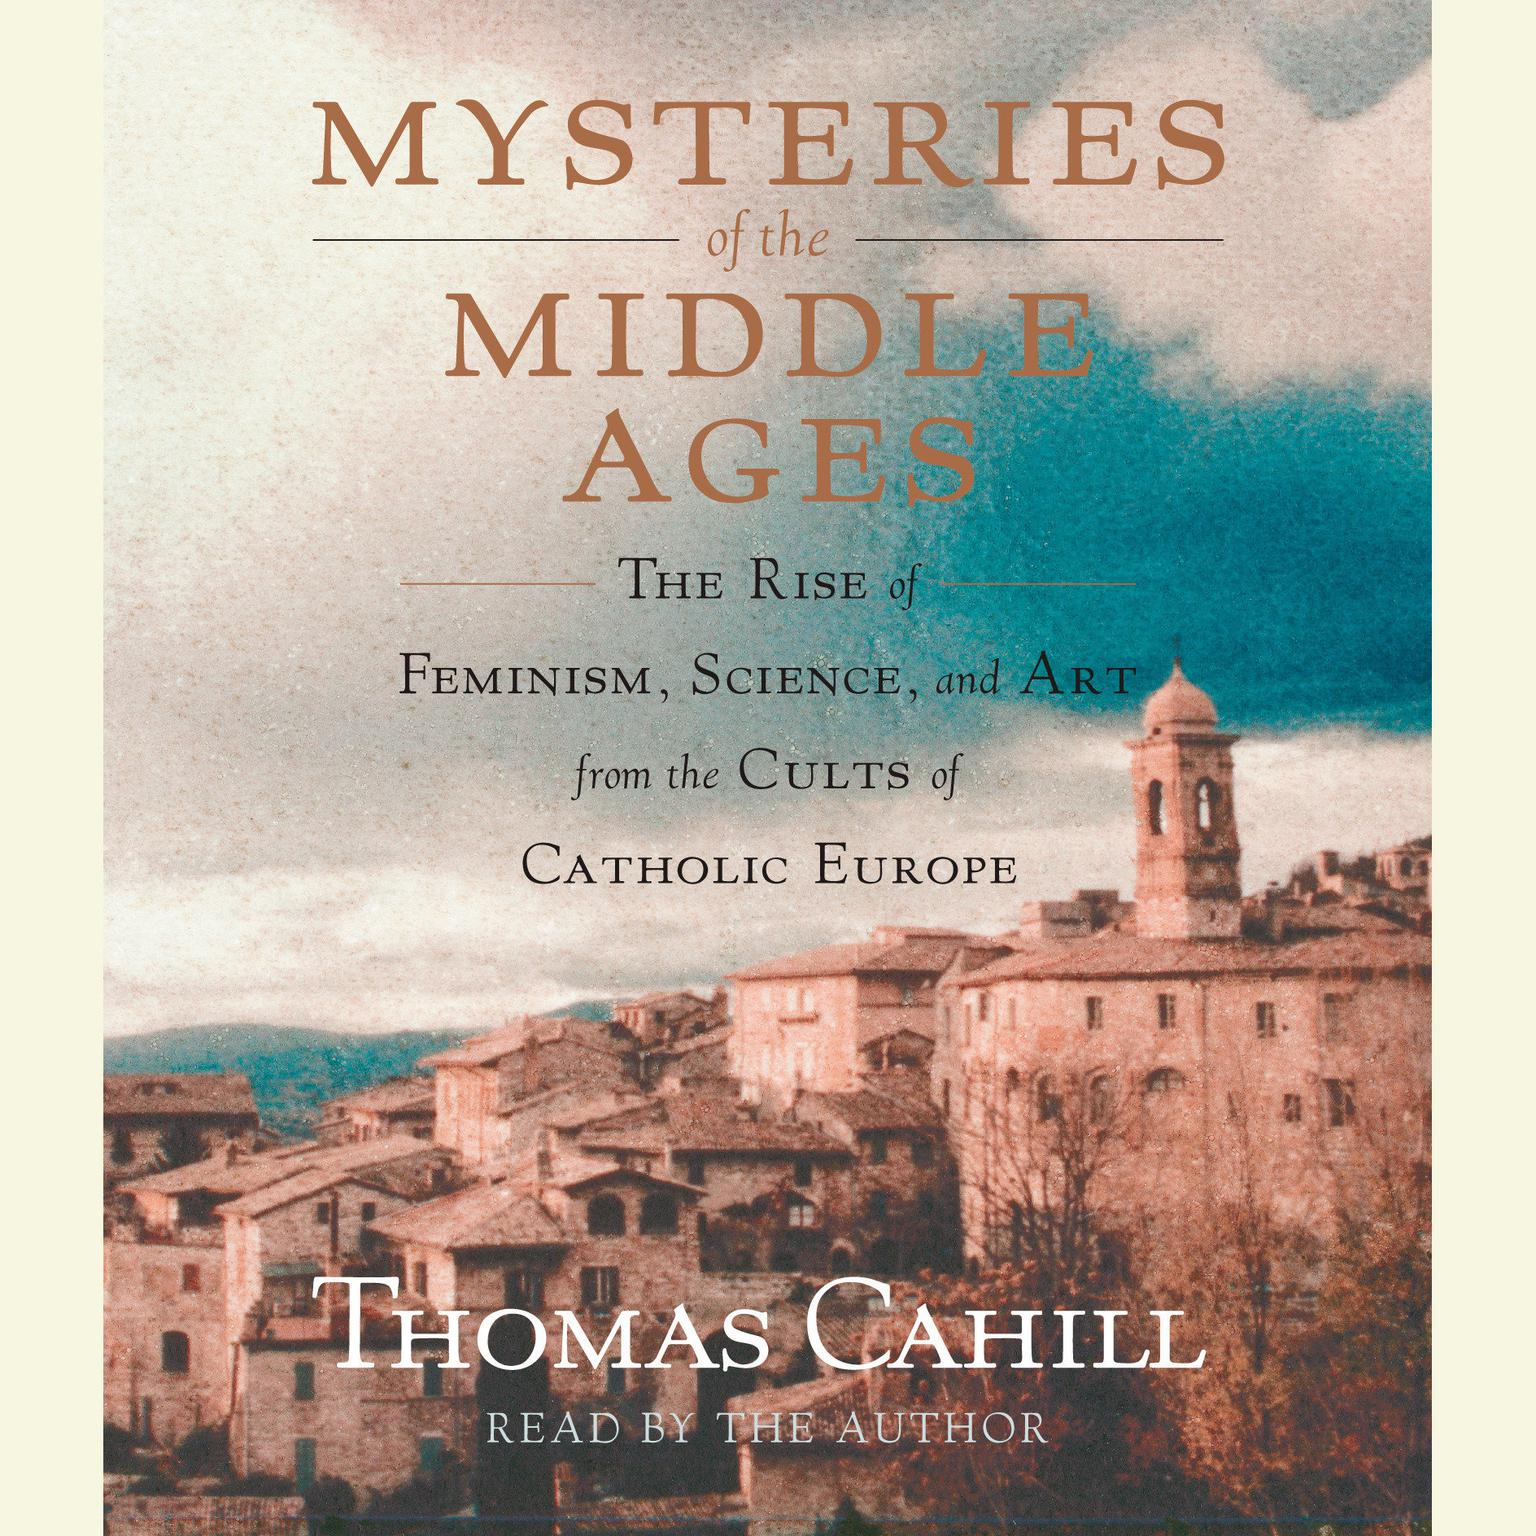 Printable Mysteries of the Middle Ages: The Rise of Feminism, Science and Art from the Cults of Catholic Europe Audiobook Cover Art